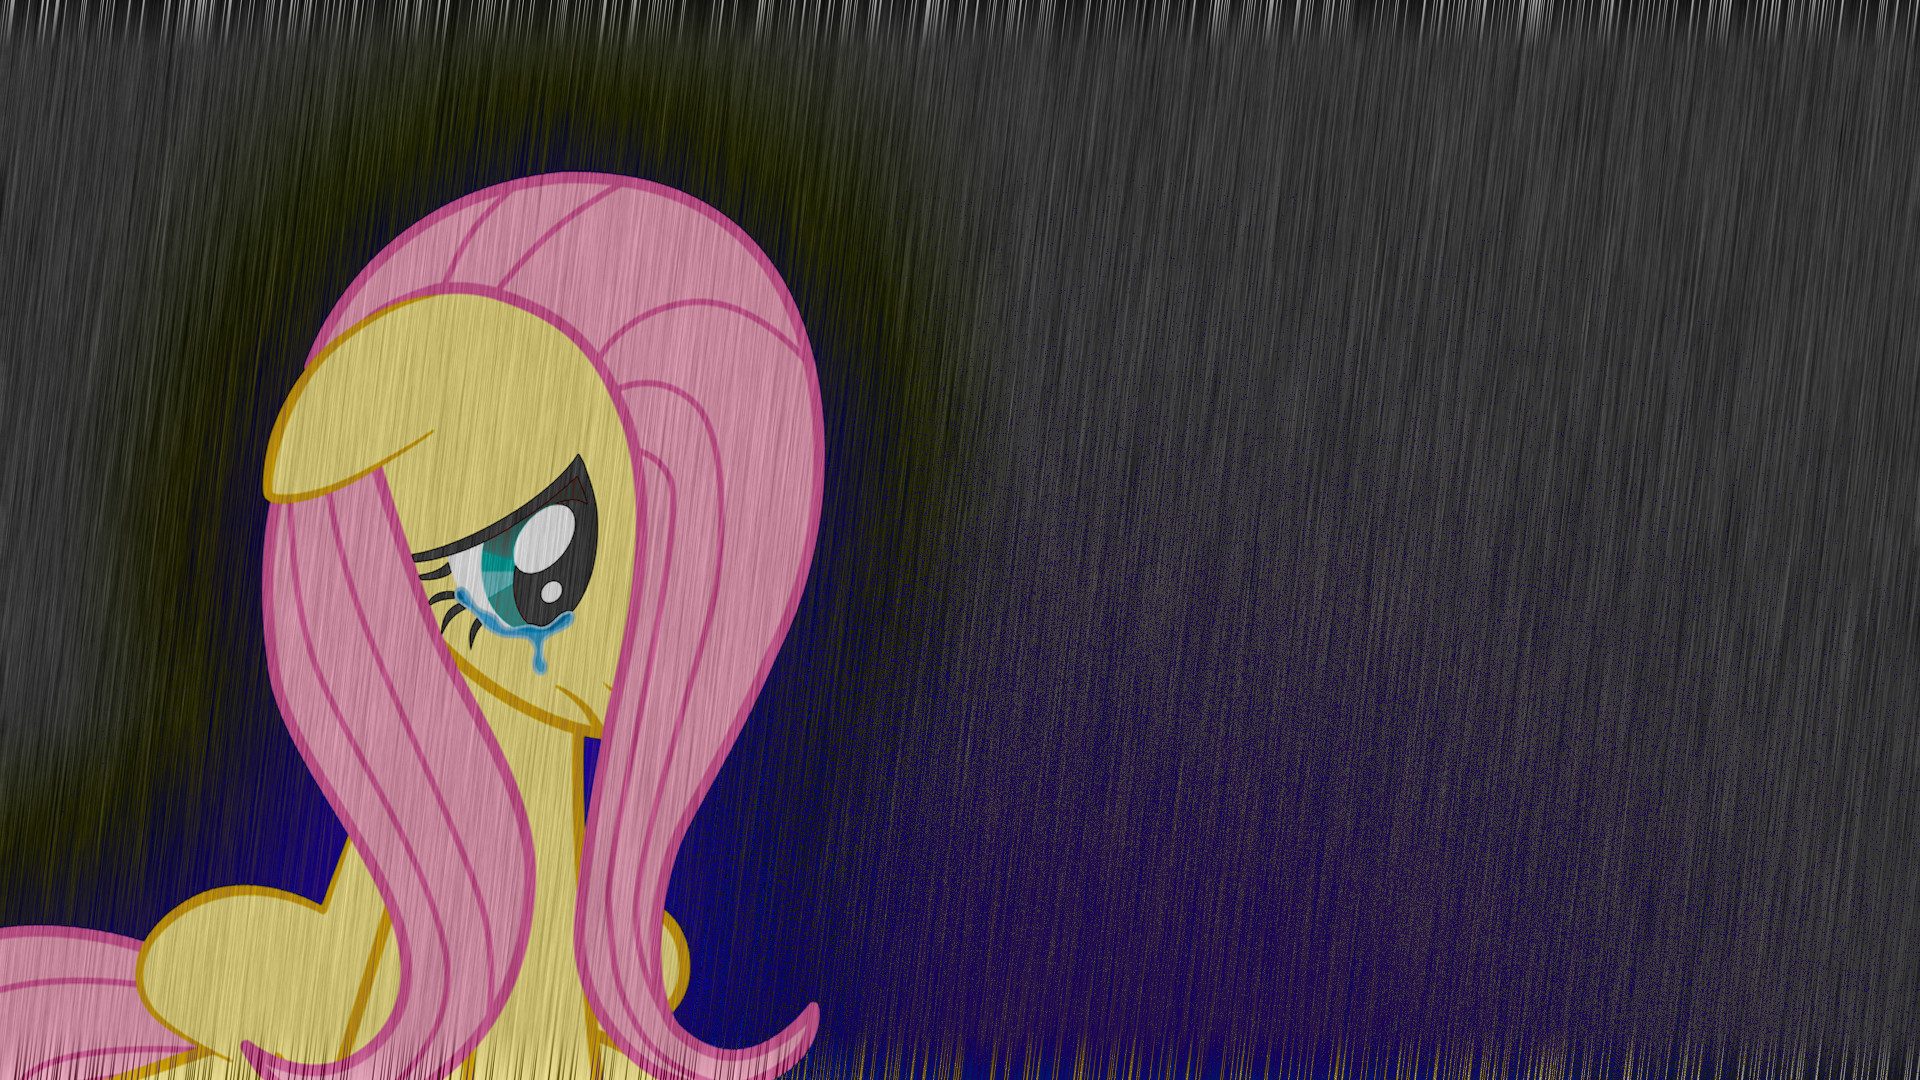 1920x1080 Sad Fluttershy - Wallpaper by NightmareDashy Sad Fluttershy - Wallpaper by  NightmareDashy